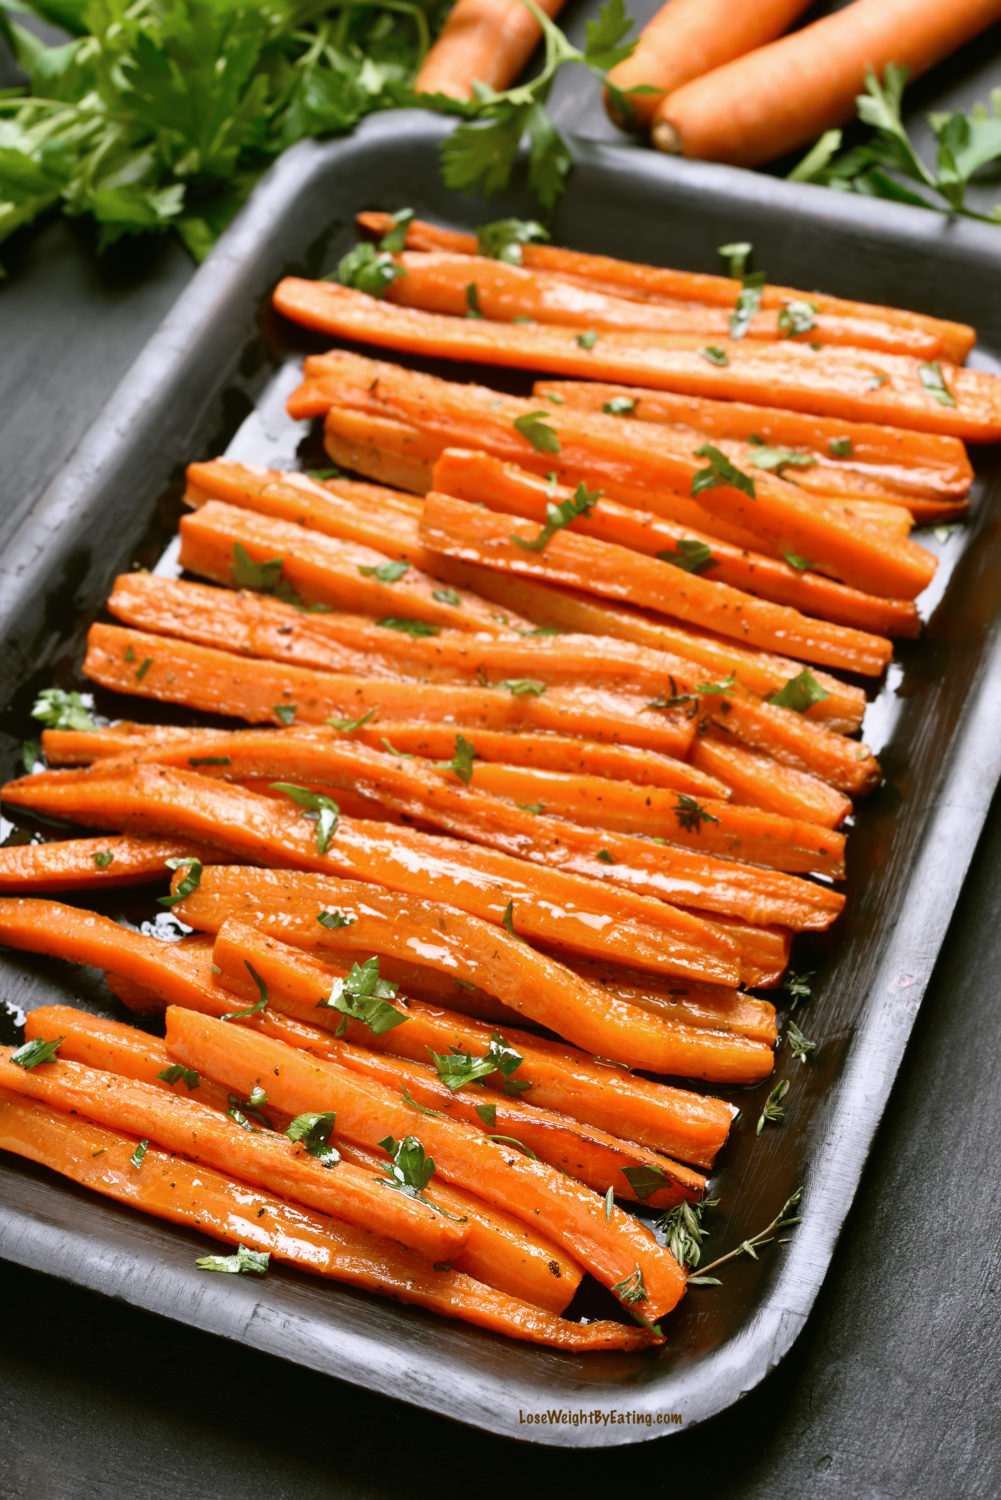 Oven Roasted Carrots Recipe The 20 Best Healthy Holiday Recipes